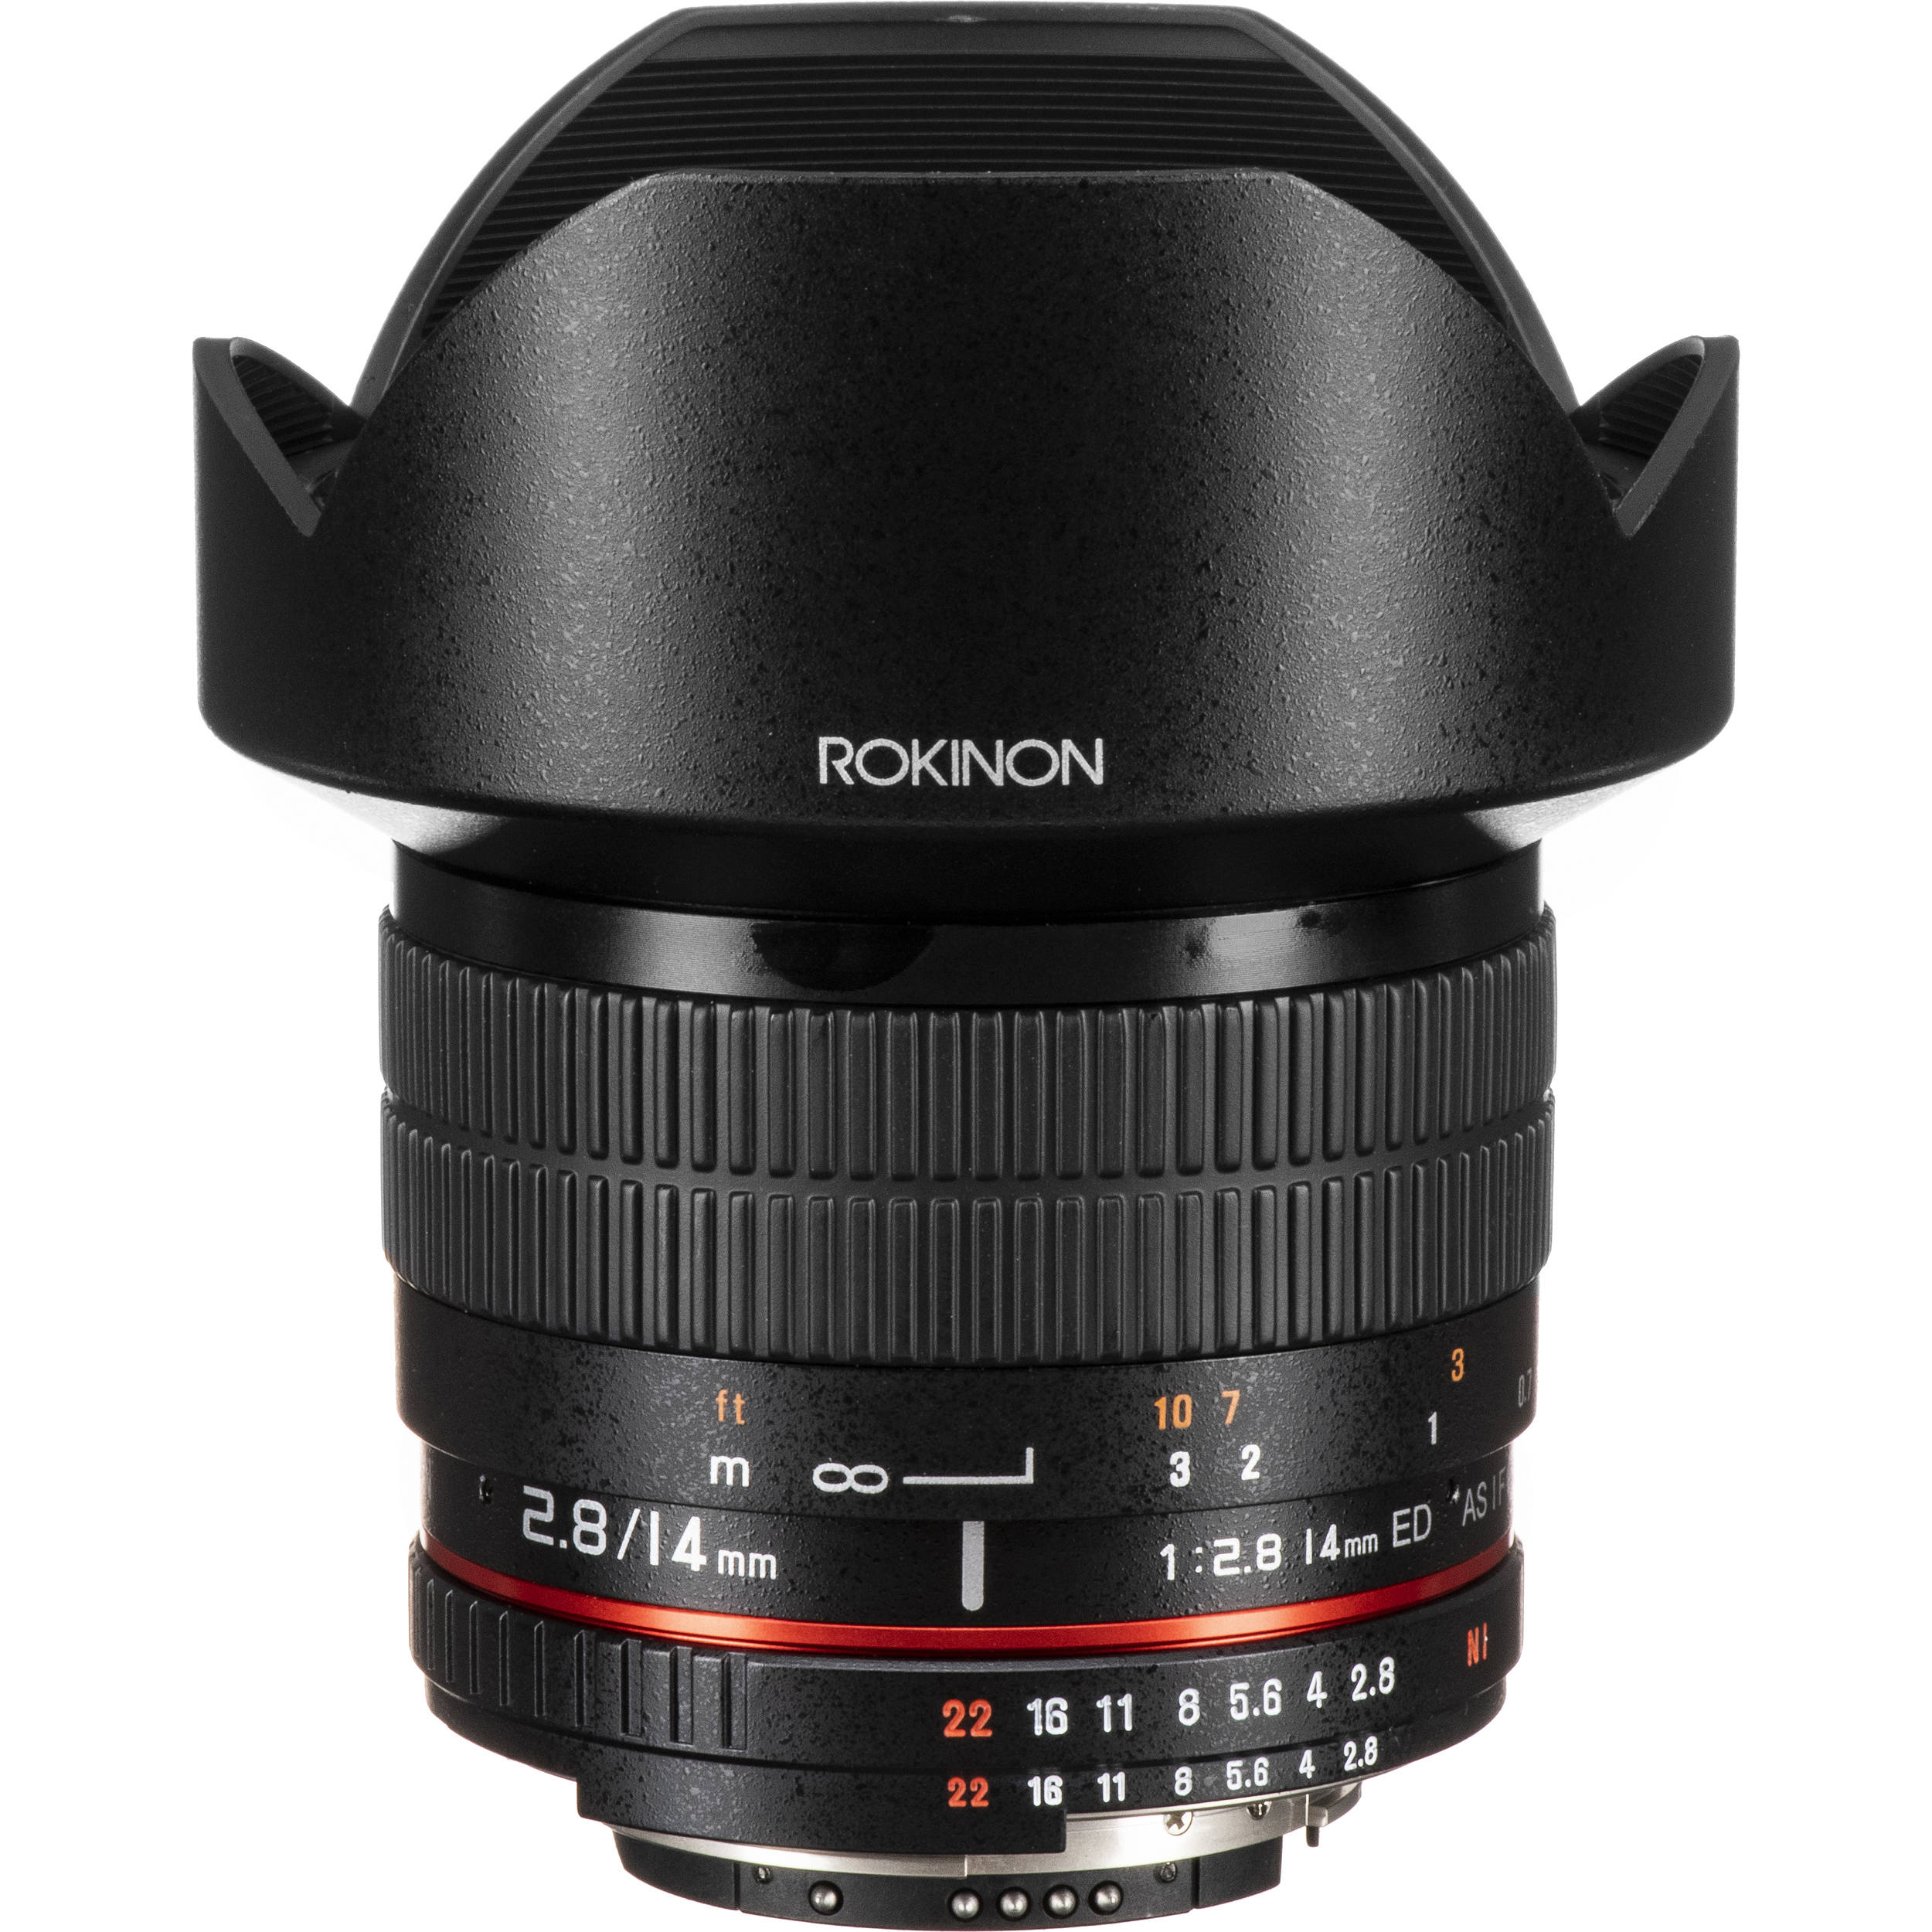 Rokinon 14mm f/2 8 IF ED UMC Lens For Nikon with AE Chip